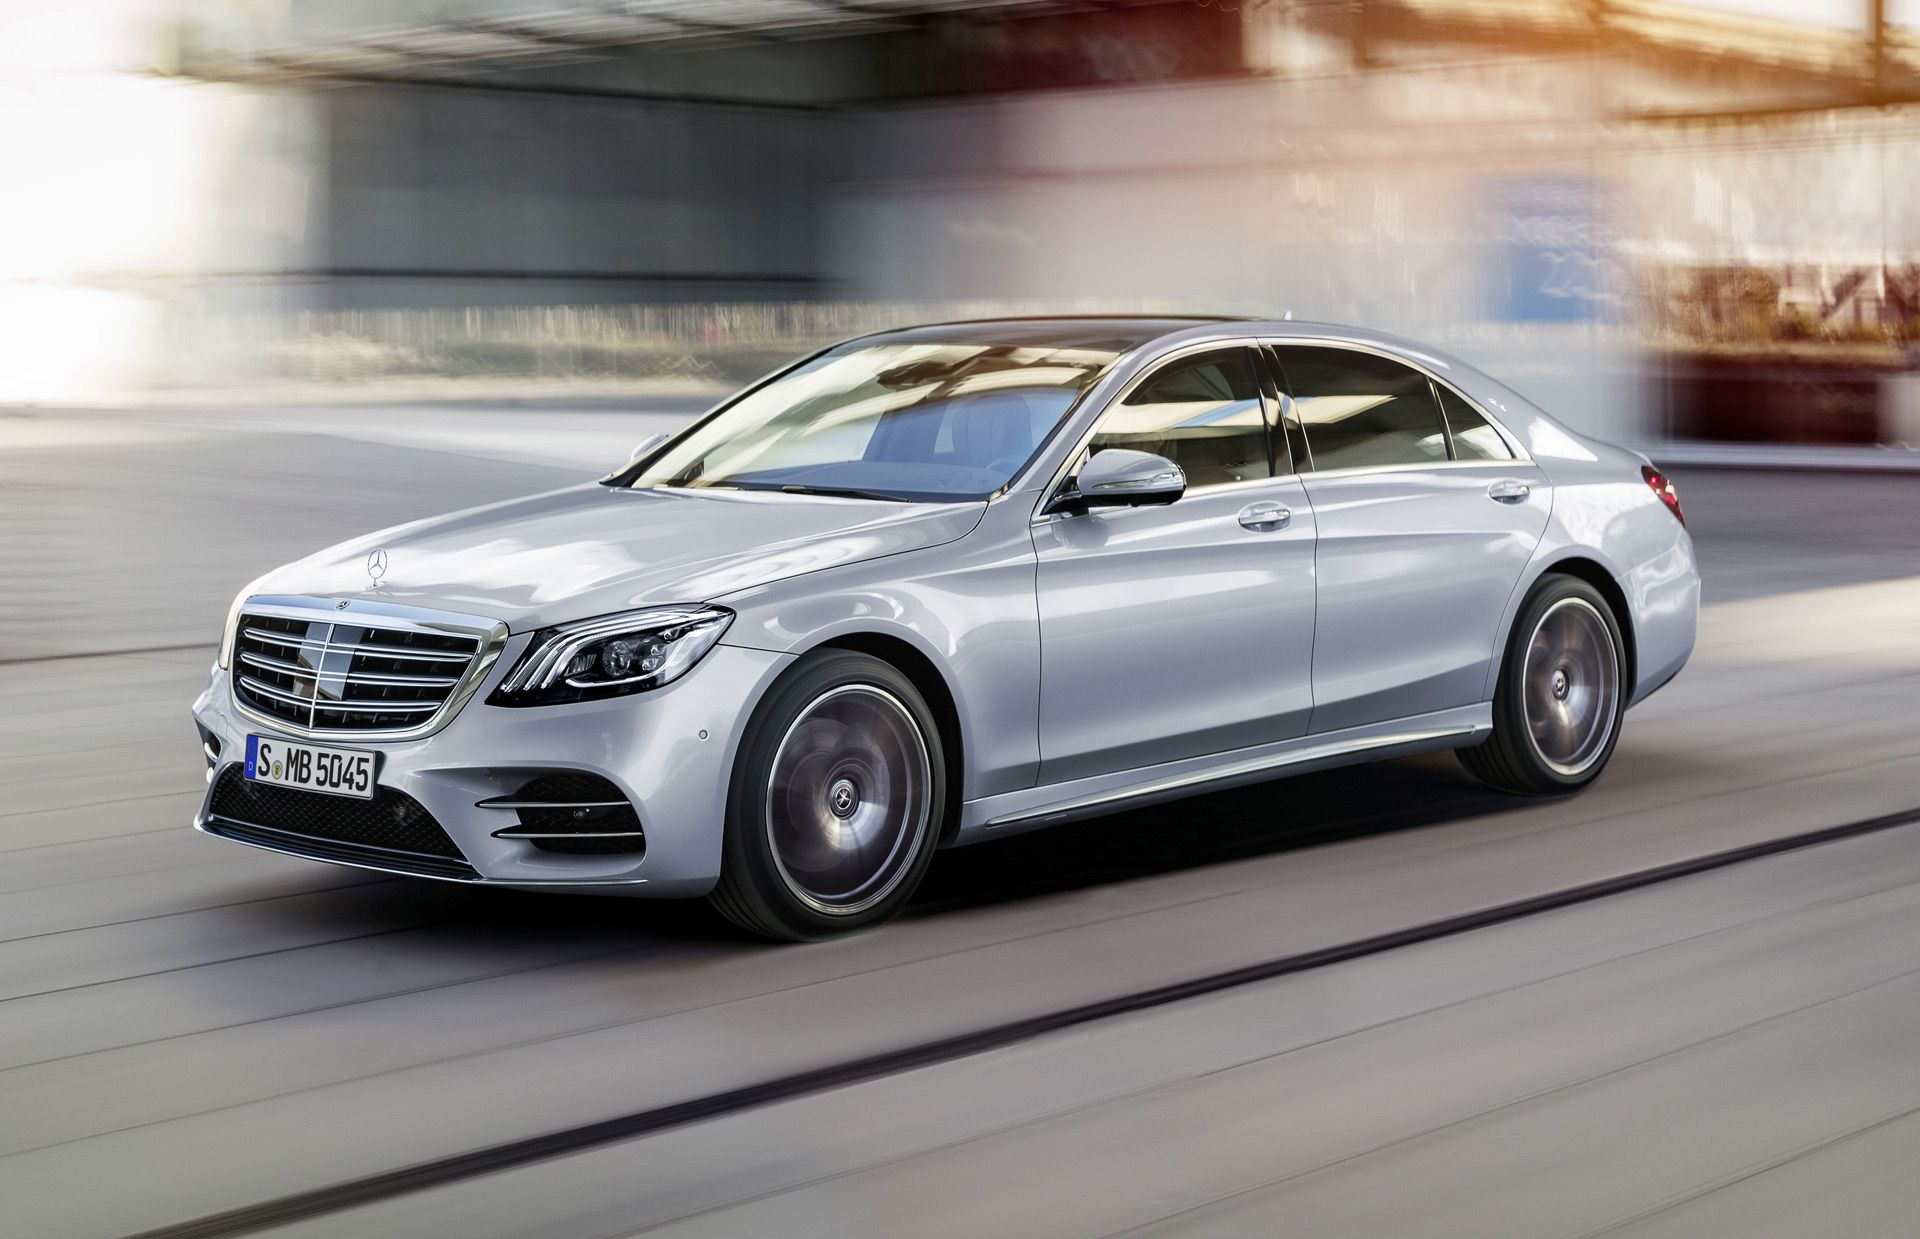 The 2018 Mercedes Benz S Class ushers in refreshed looks new